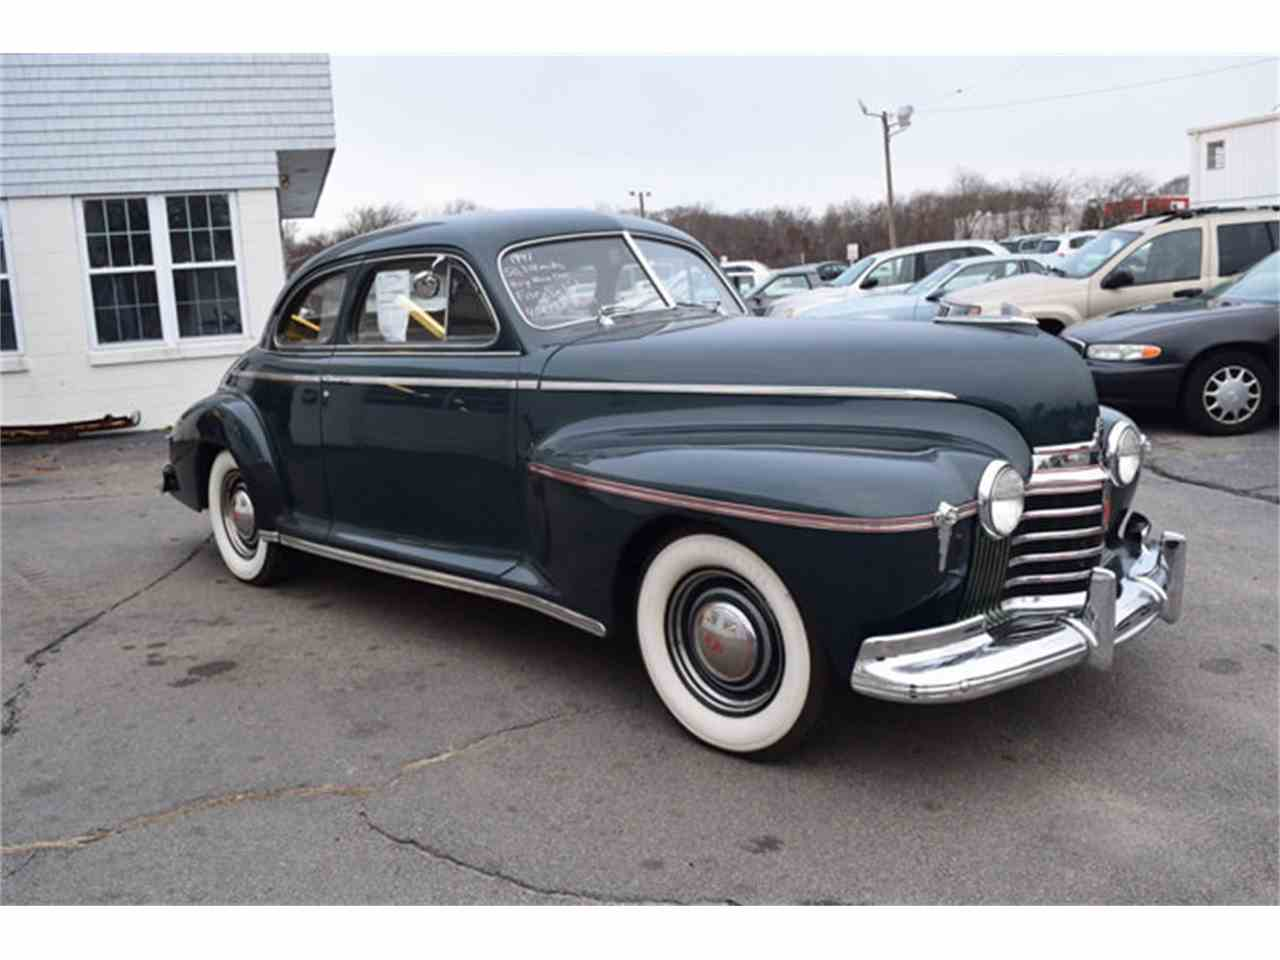 List Of Synonyms And Antonyms The Word 41 Oldsmobile Coupe 1941 Club Model 66 For Sale Classiccarscom Cc 1013870